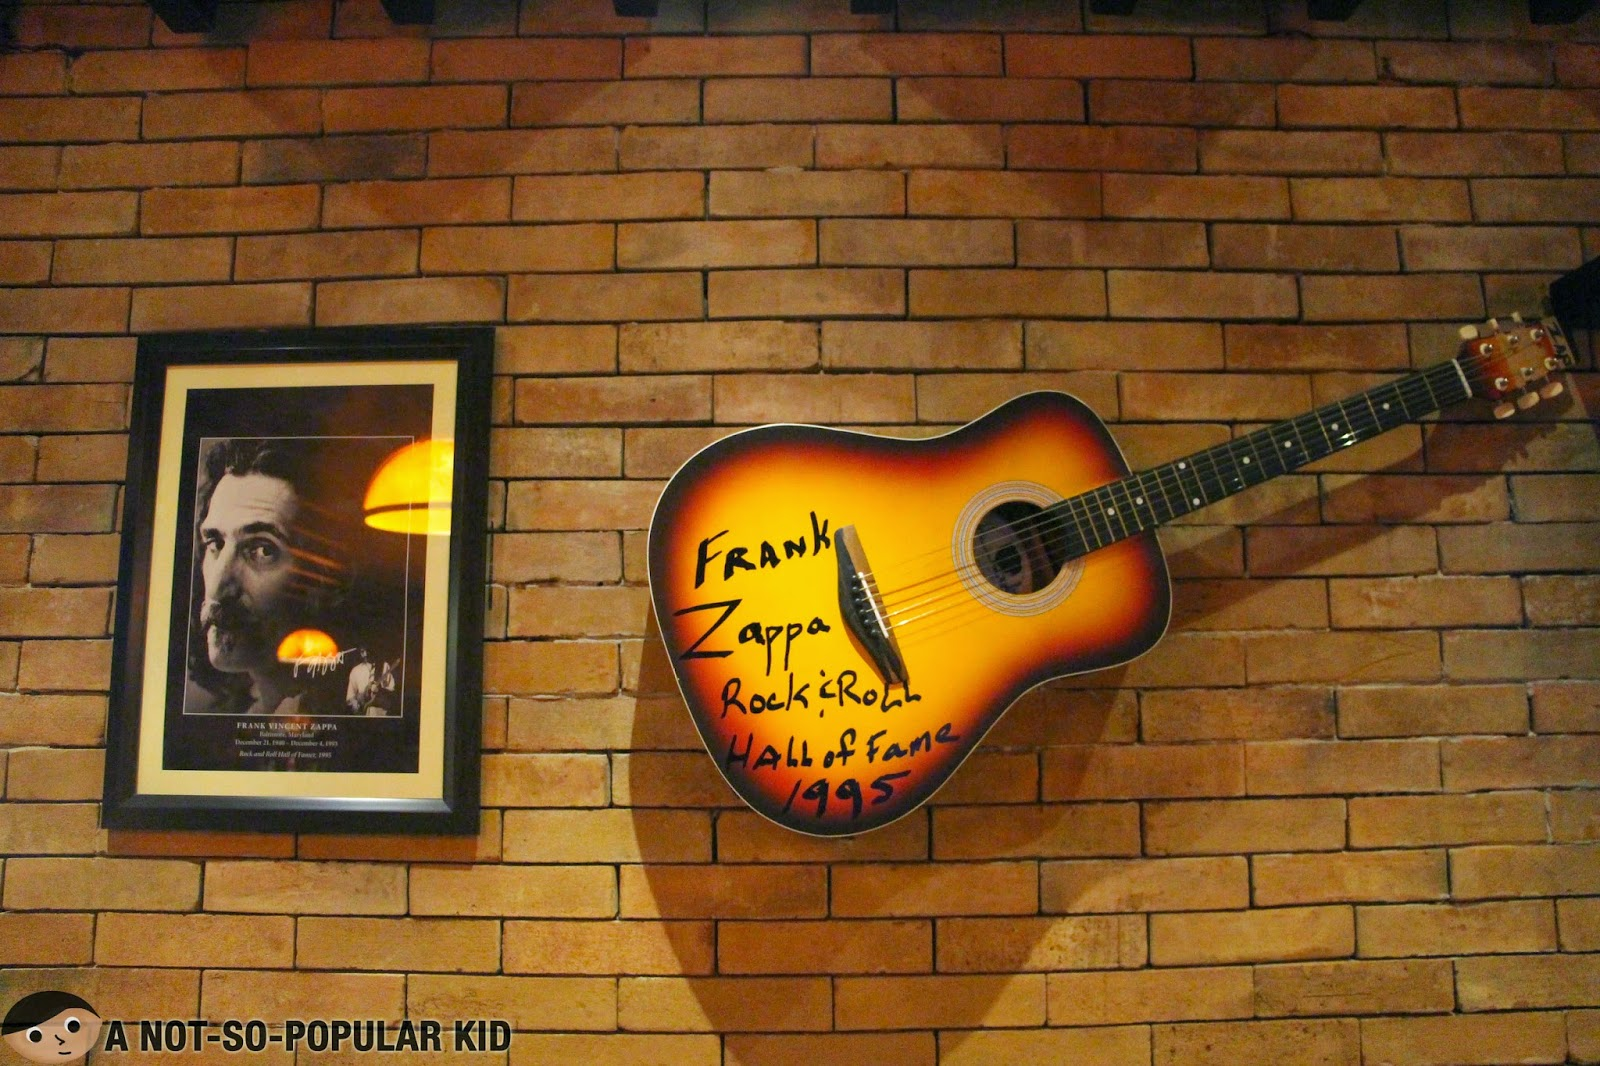 Frank Zappa Signed Guitar in Franks Craft Beers